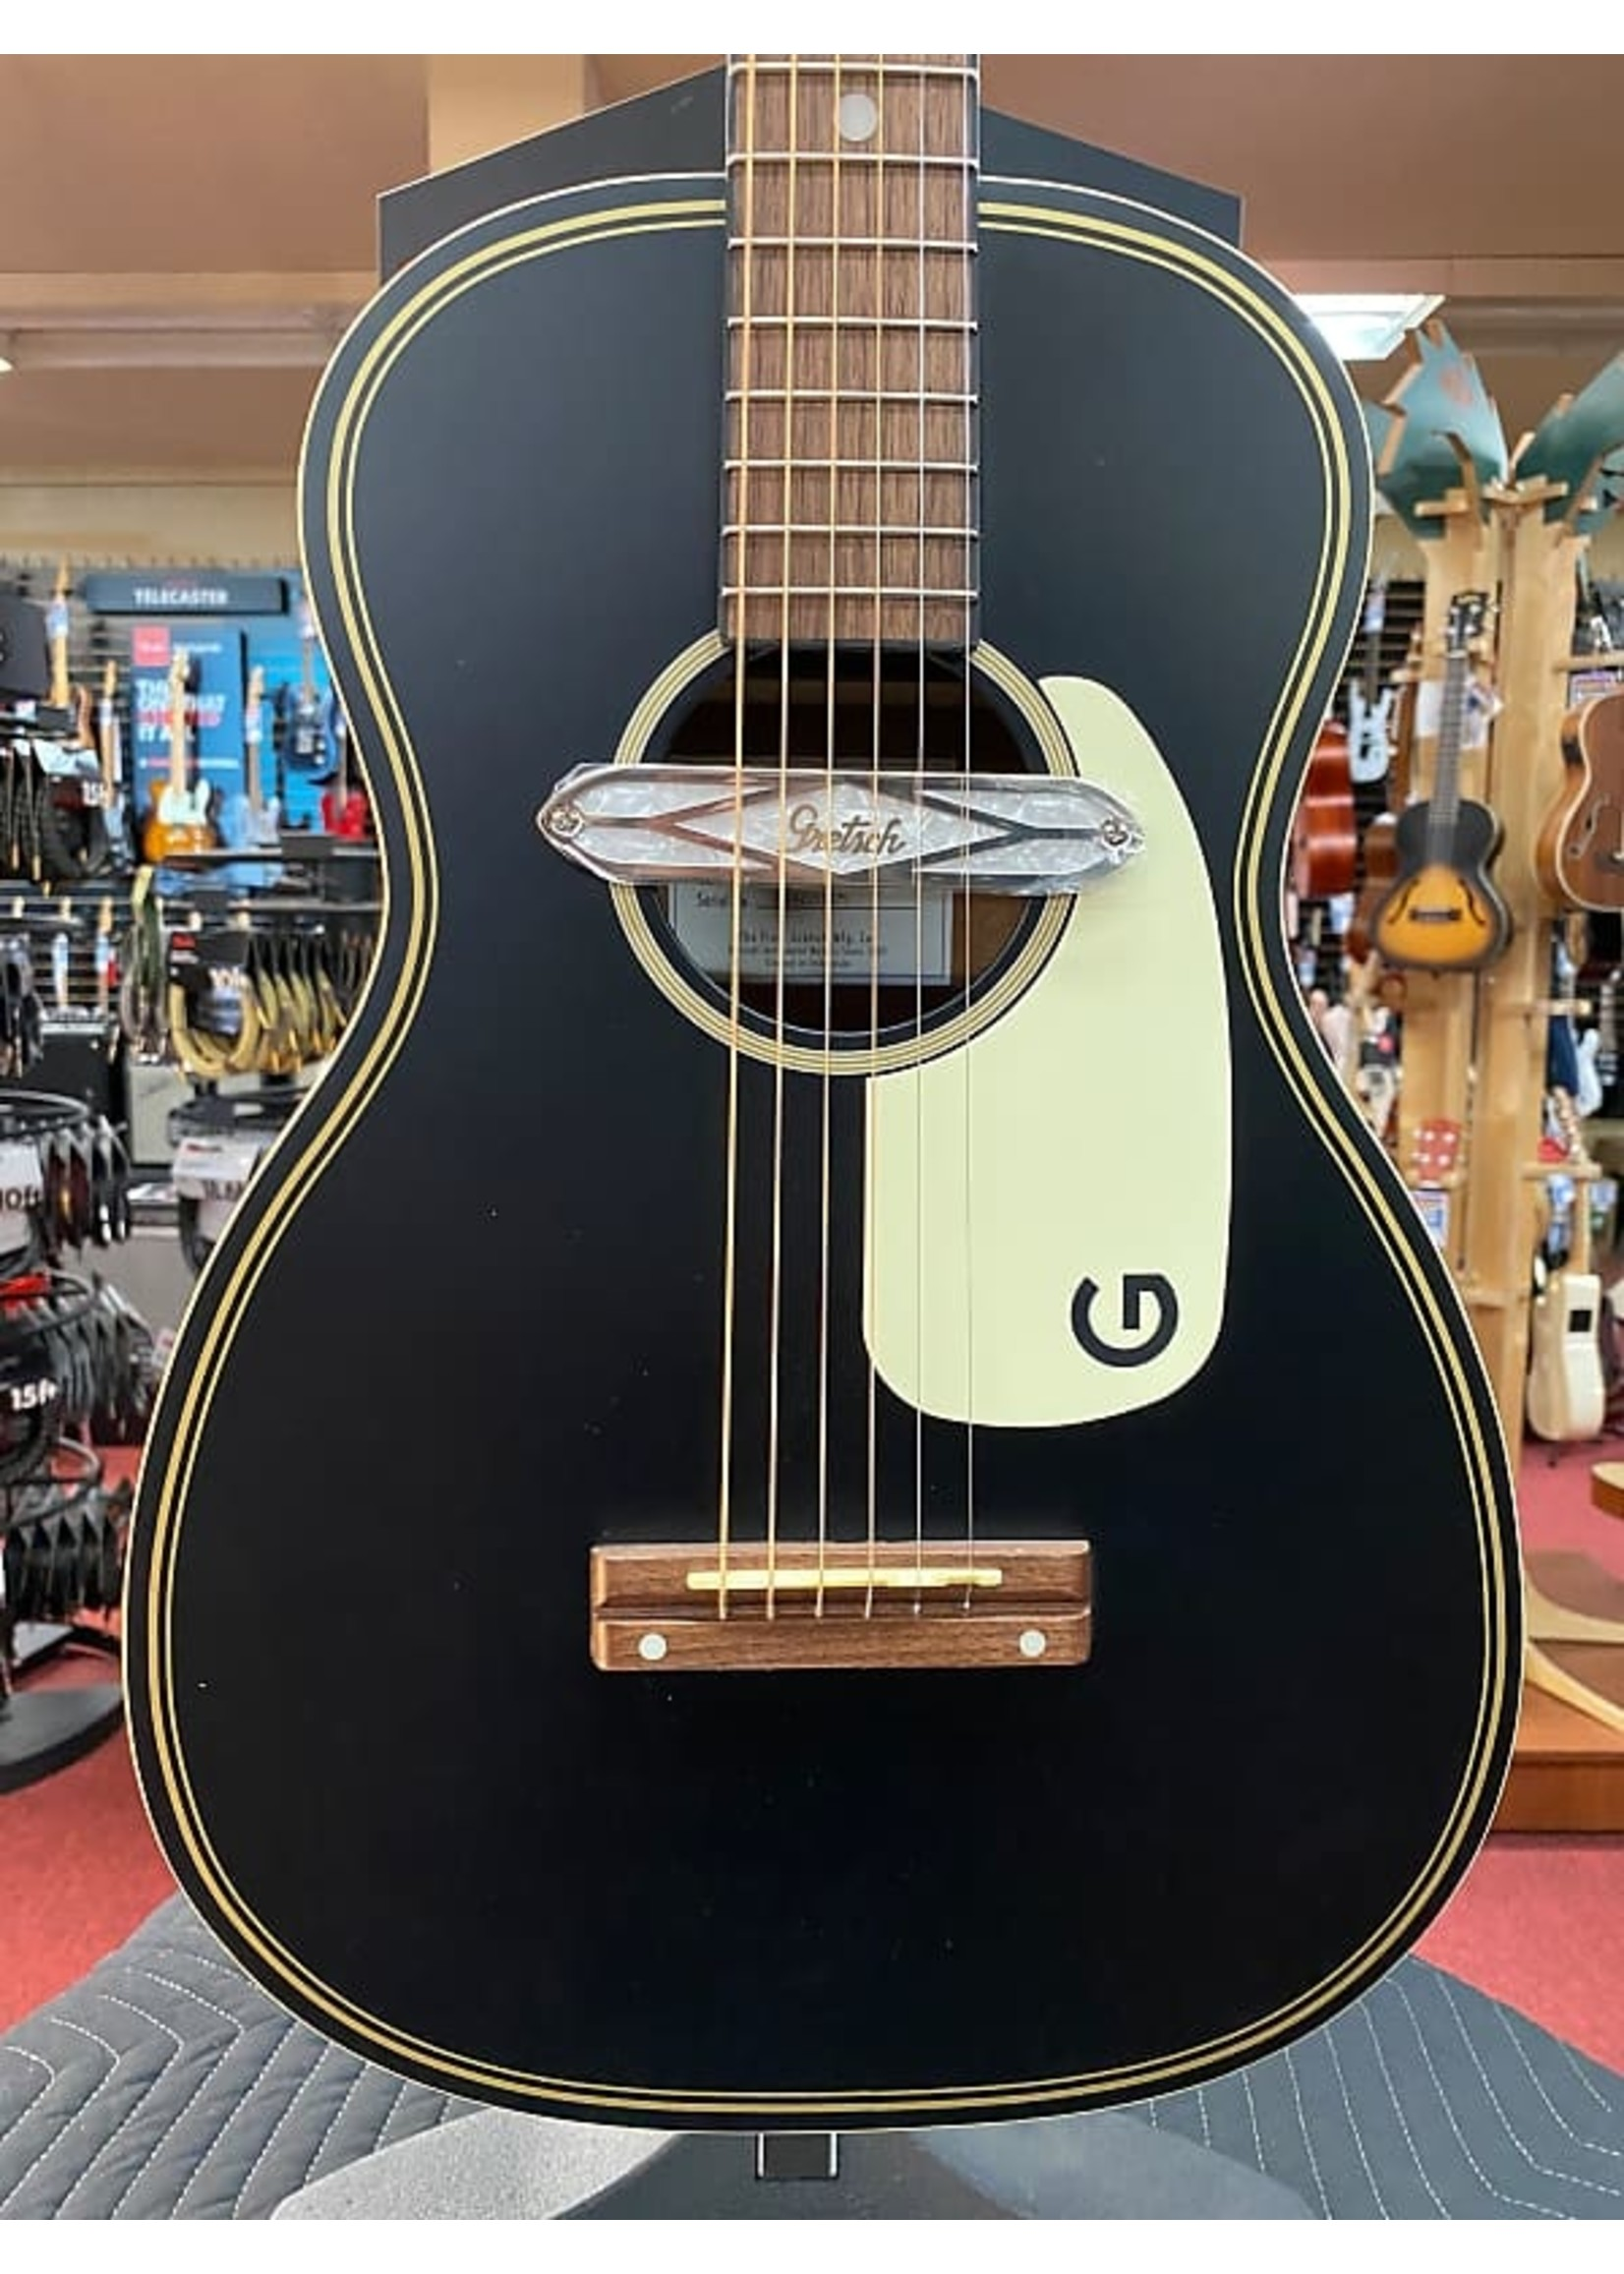 Gretsch Gretsch G9520E Gin Rickey Acoustic/Electric with Soundhole Pickup, Smokestack Black